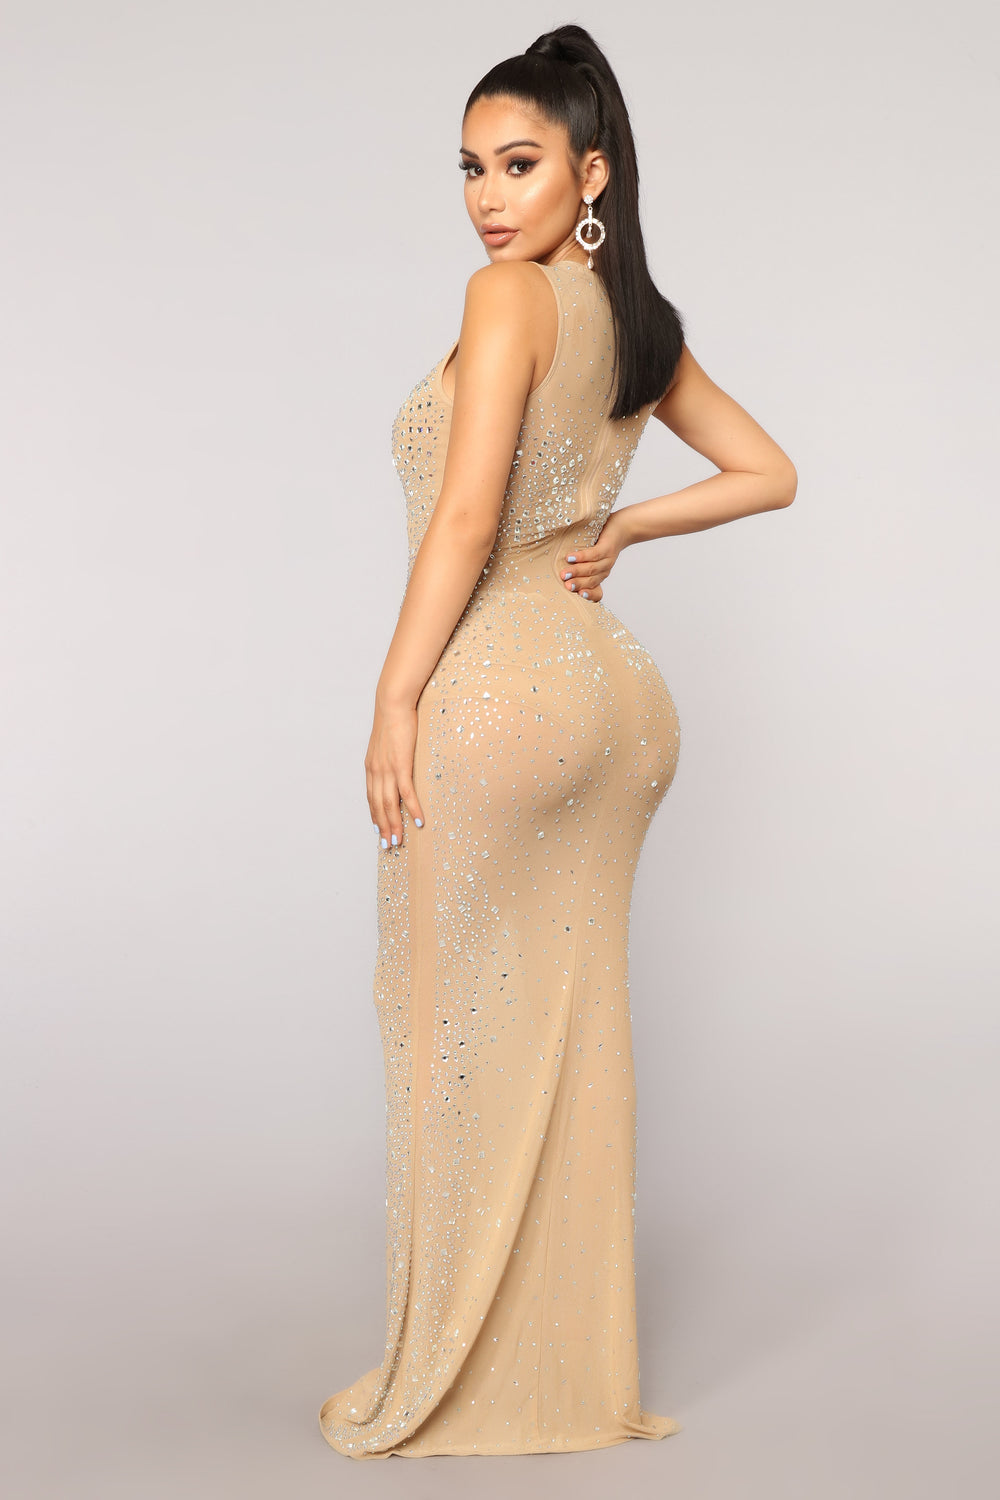 See You Through Mesh Dress - Taupe